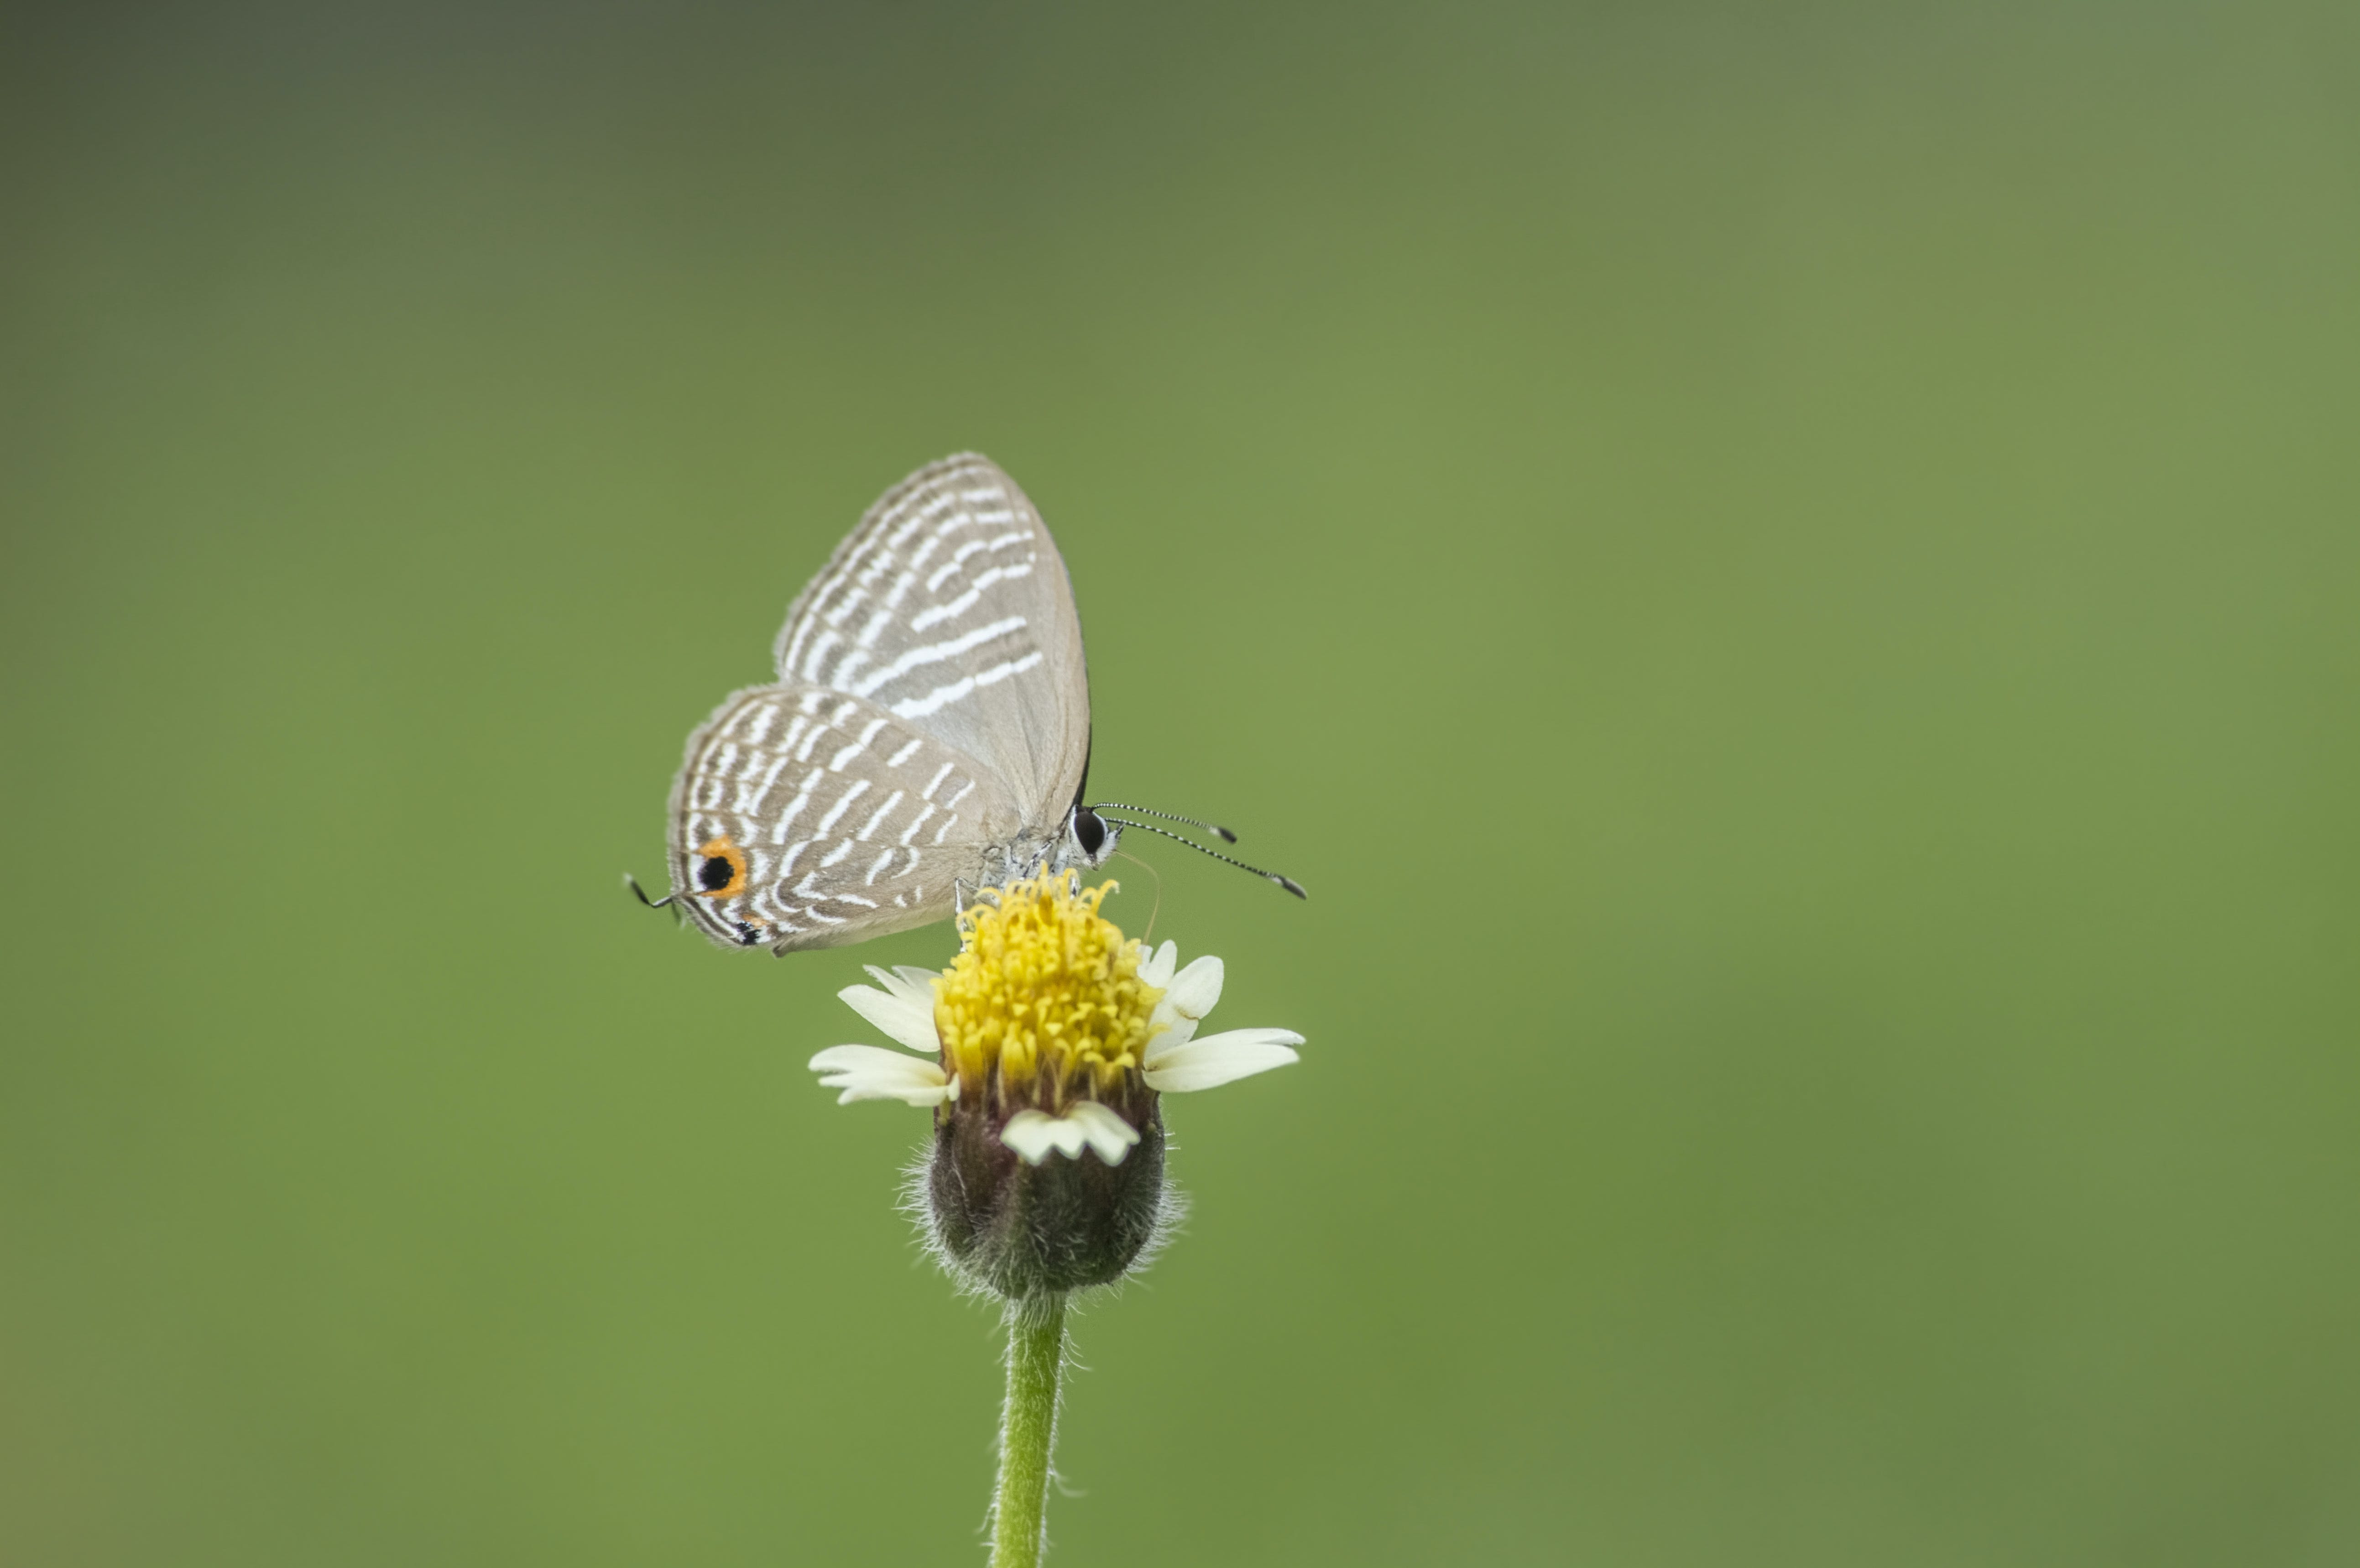 Free stock photo of butterfly, butterfly on a flower, Dark Caerulean, small butterfly